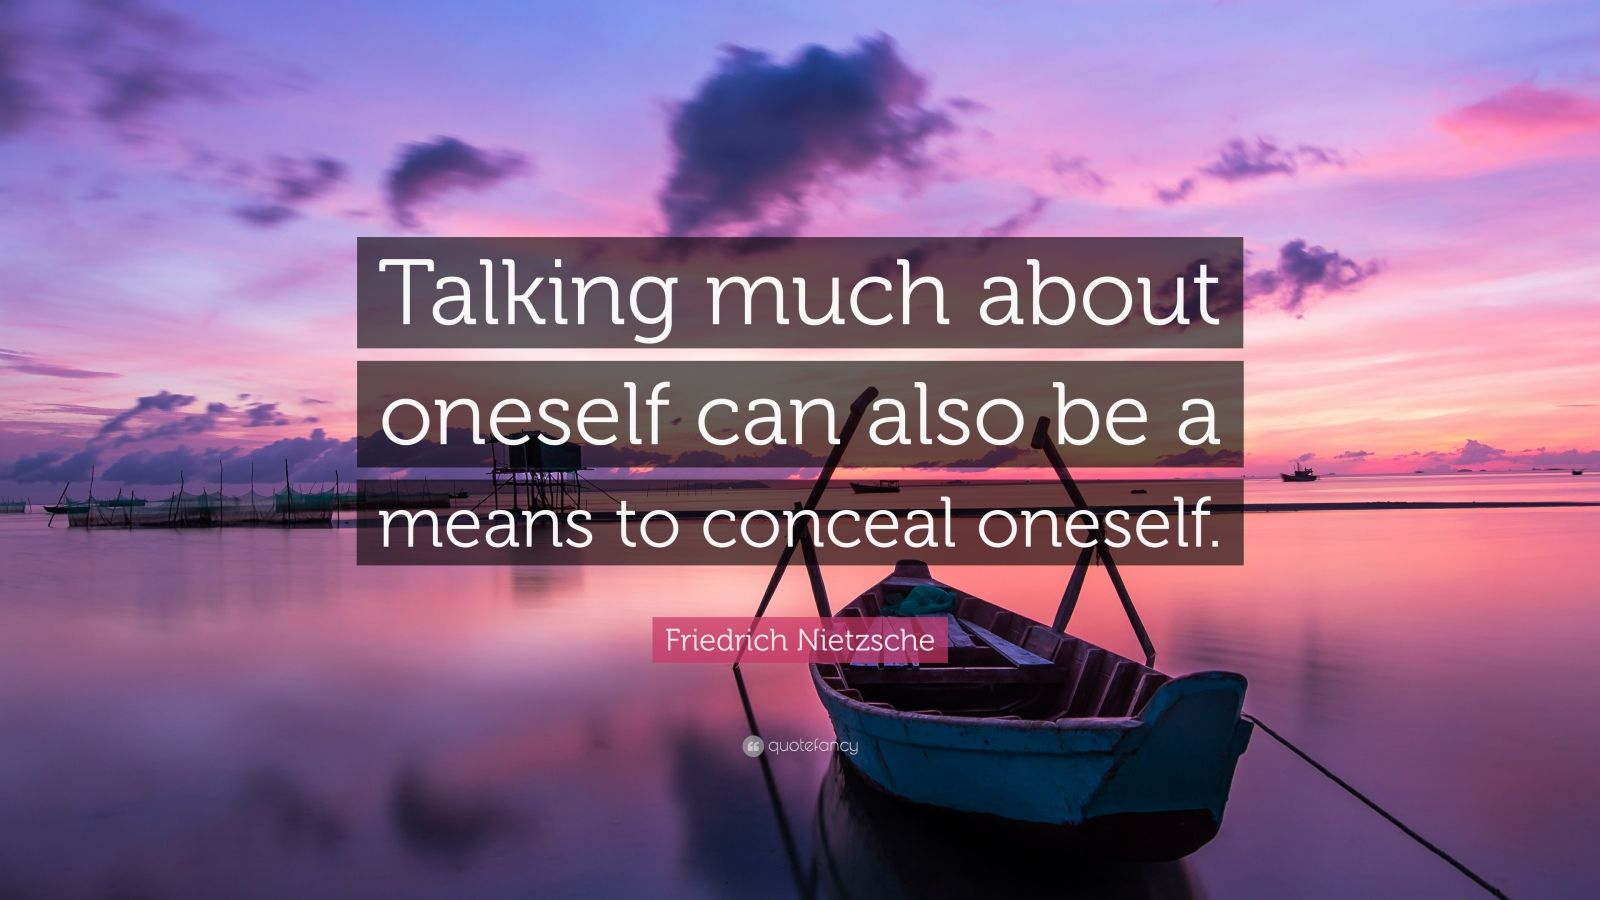 """Friedrich Nietzsche Quote: """"Talking much about oneself can also be a means to conceal oneself."""""""